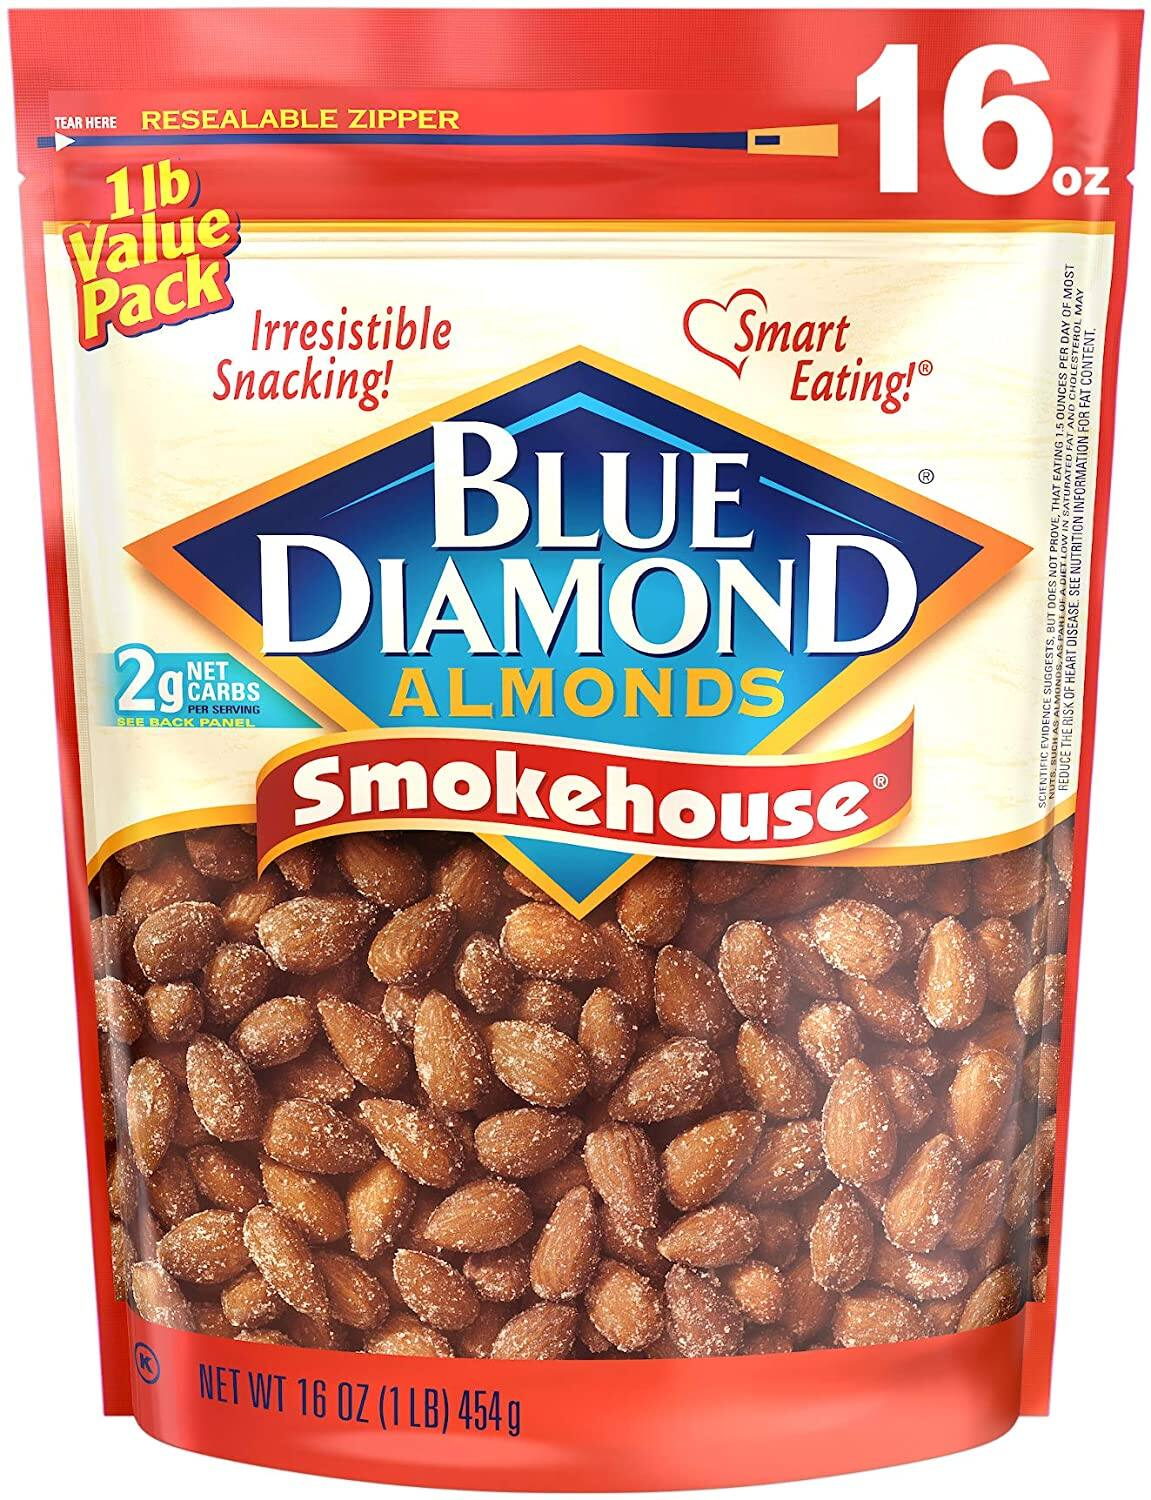 16 oz. Blue Diamond Gluten Free Almonds (Smokehouse) $5.32 - Amazon